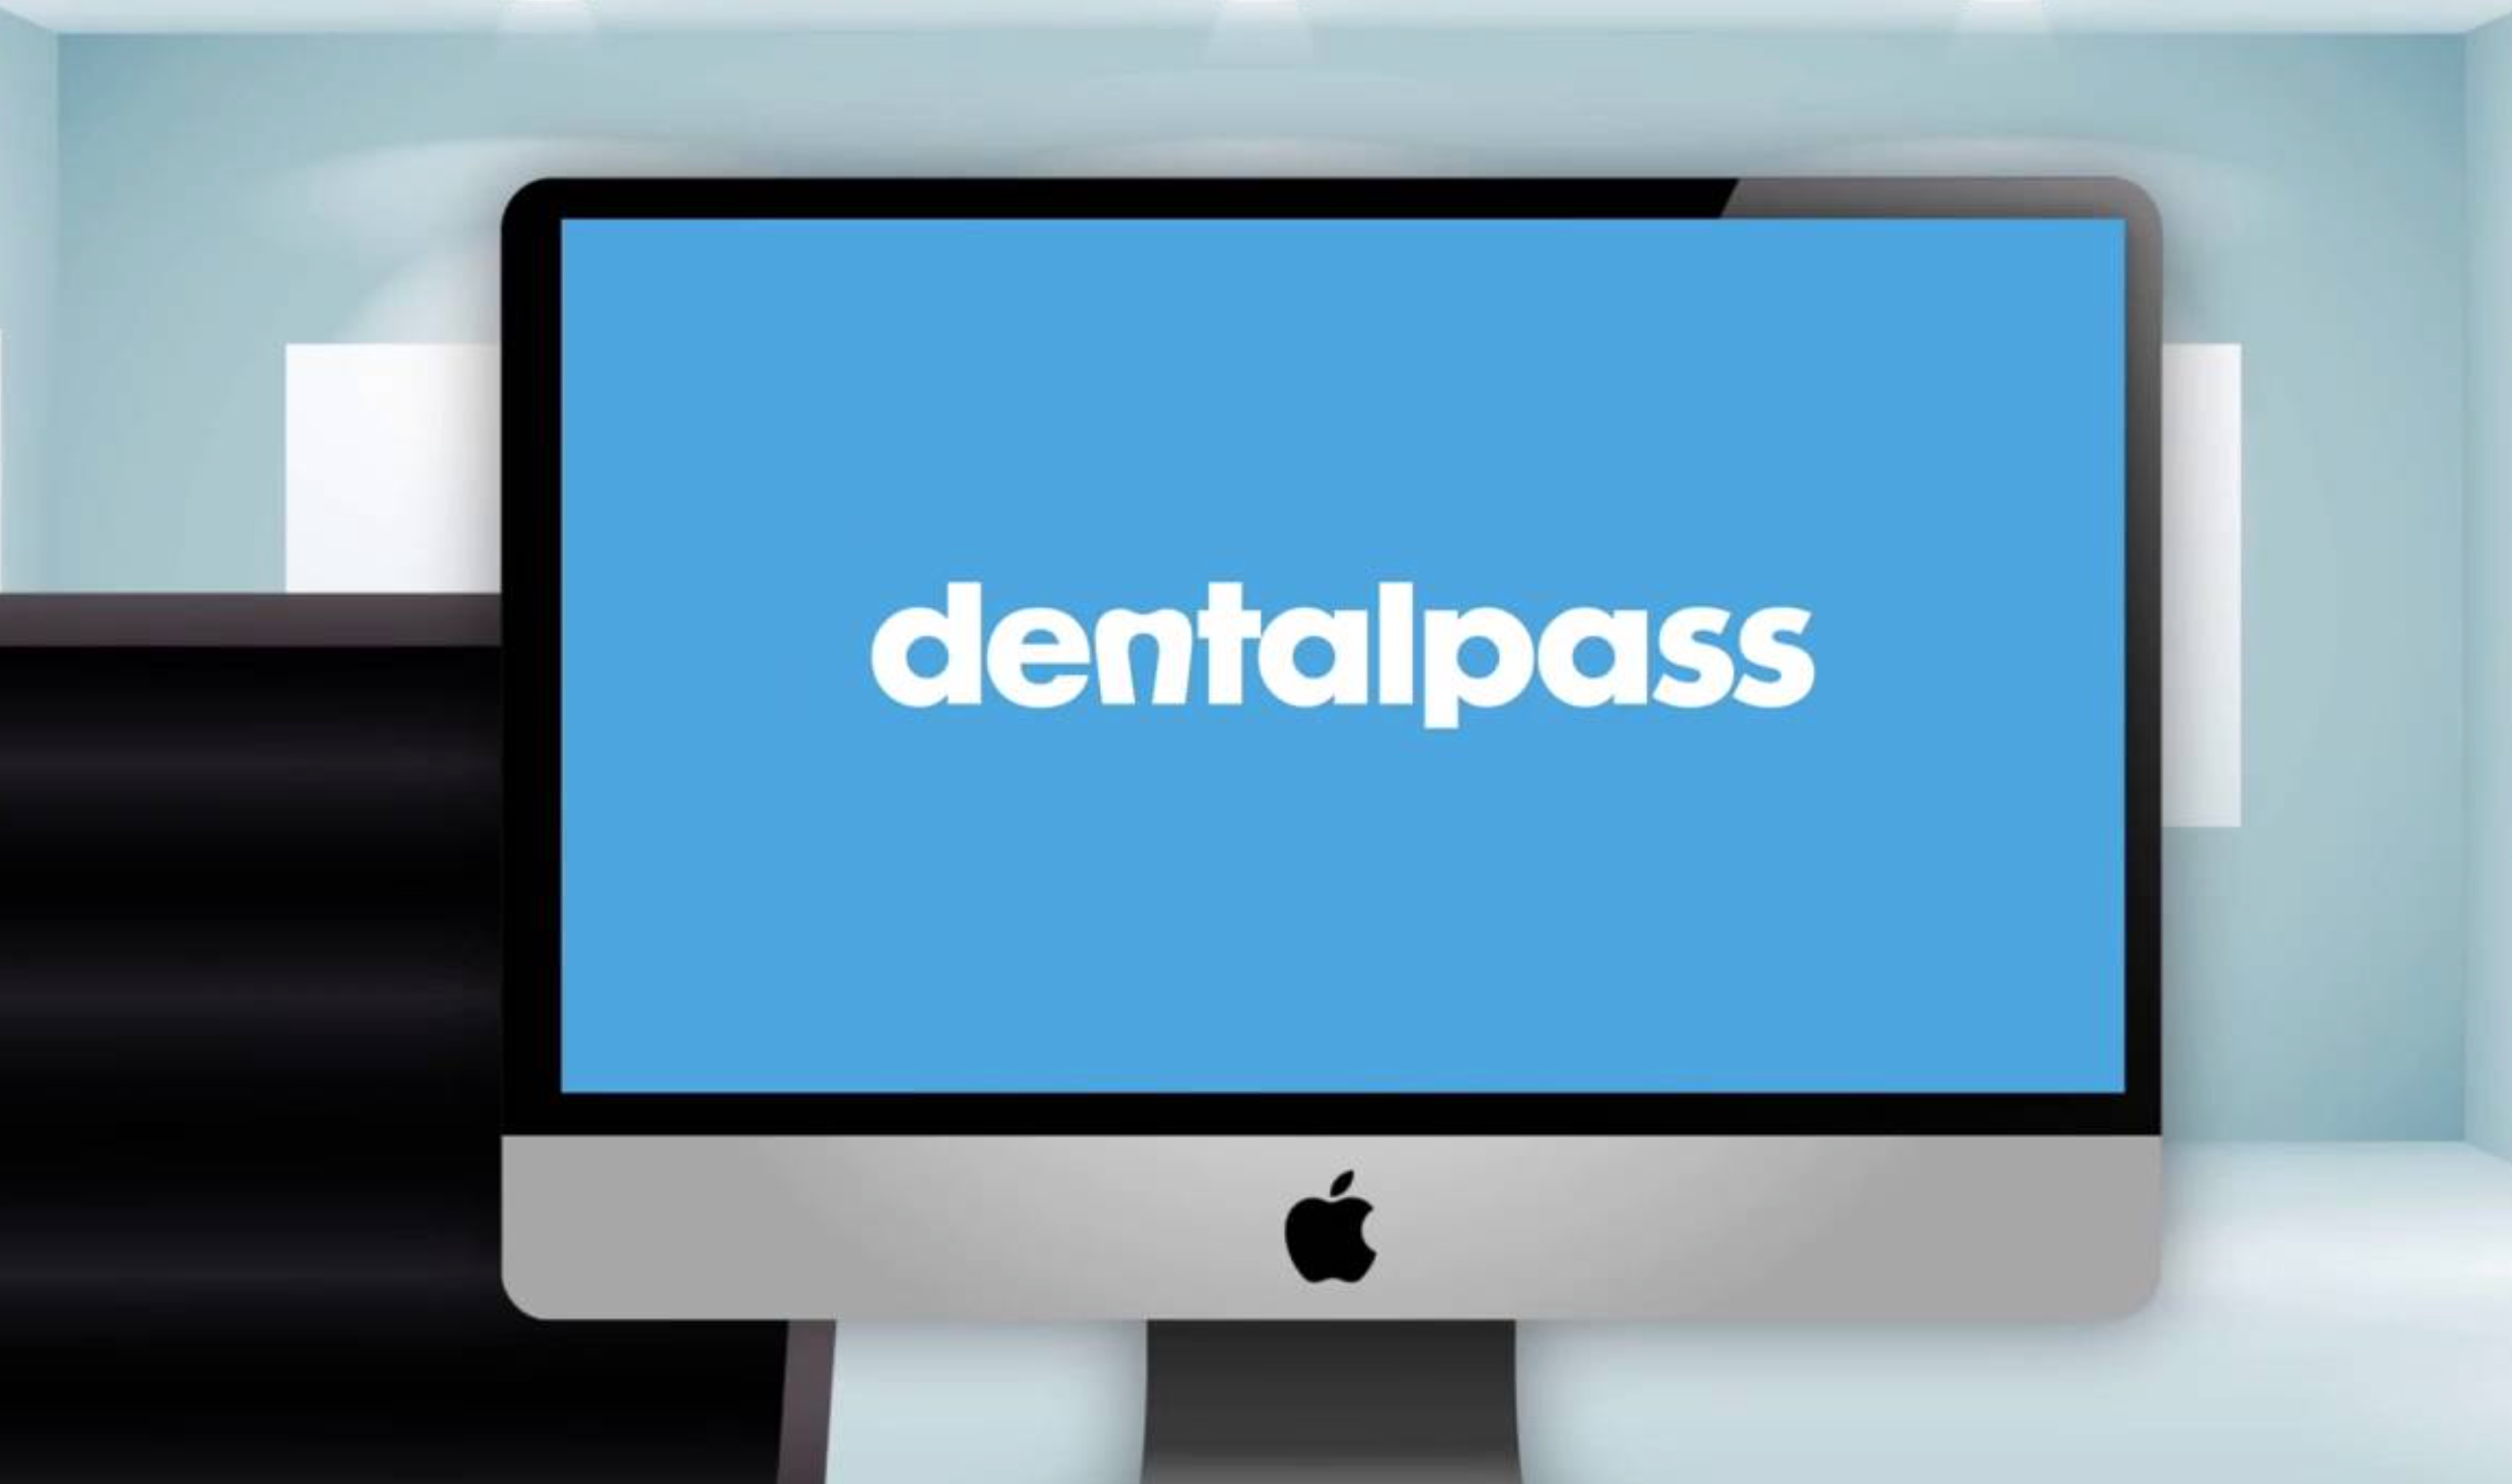 Dentalpass